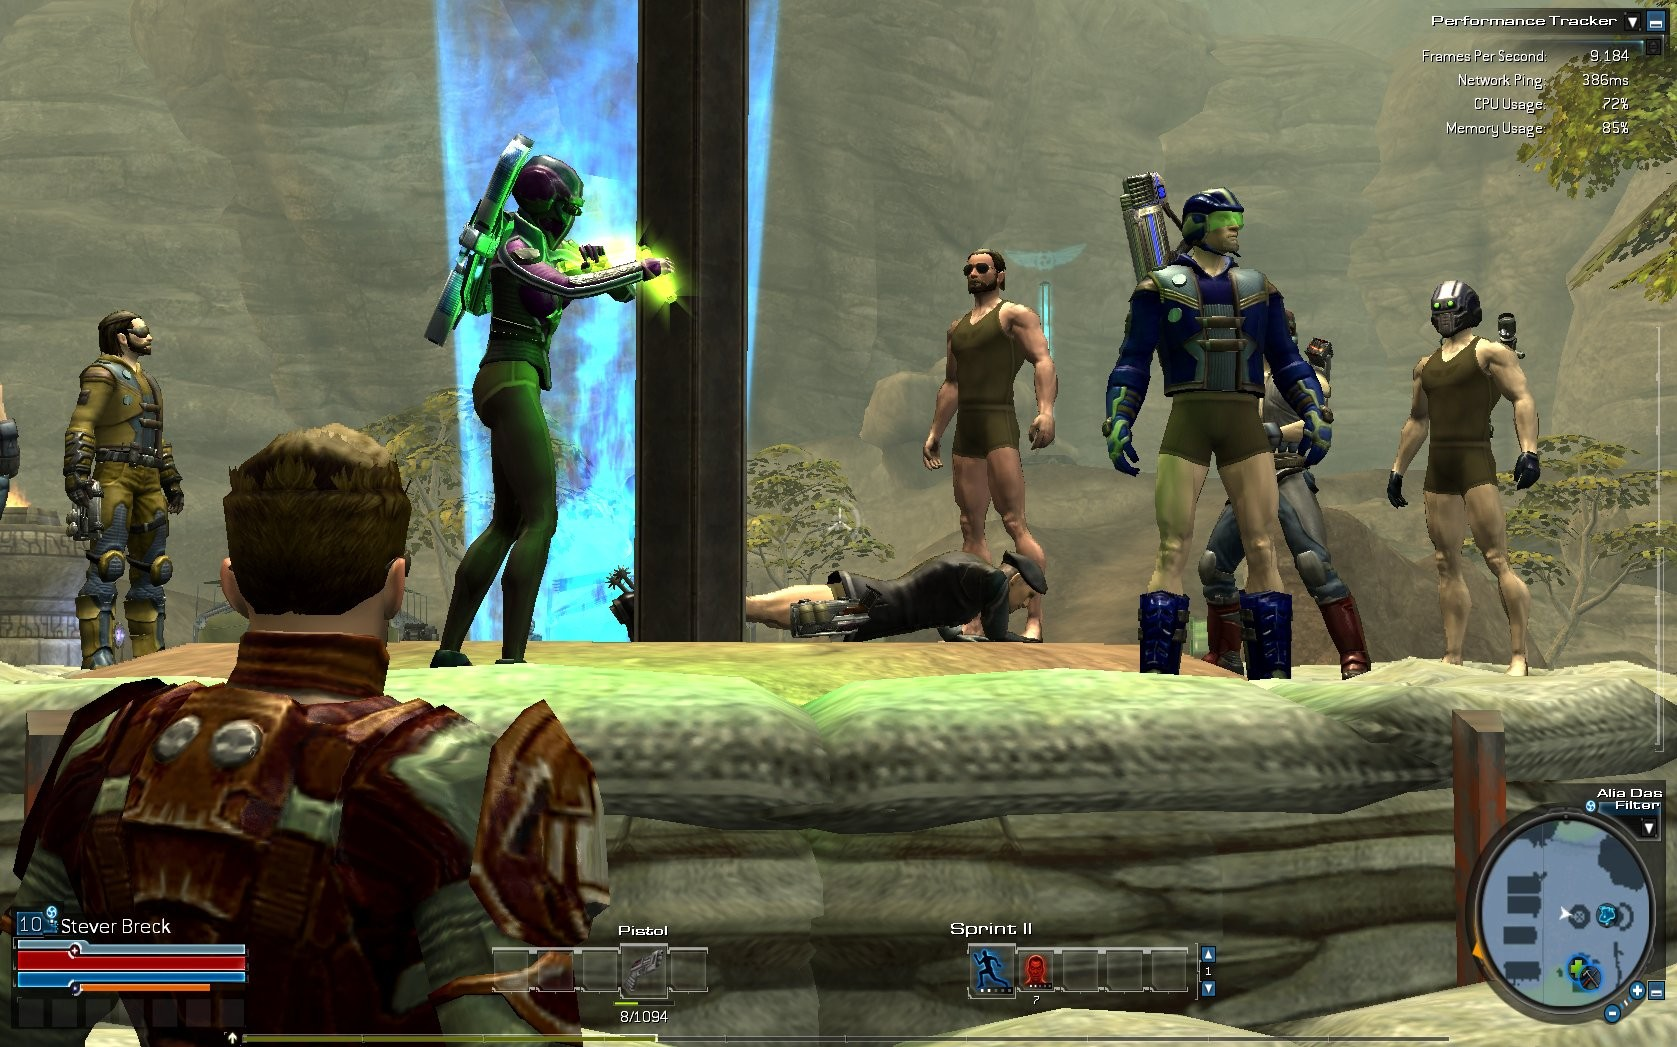 Tabula Rasa - Early in the beta after an incident where everyone logged in and had no pants on their characters.